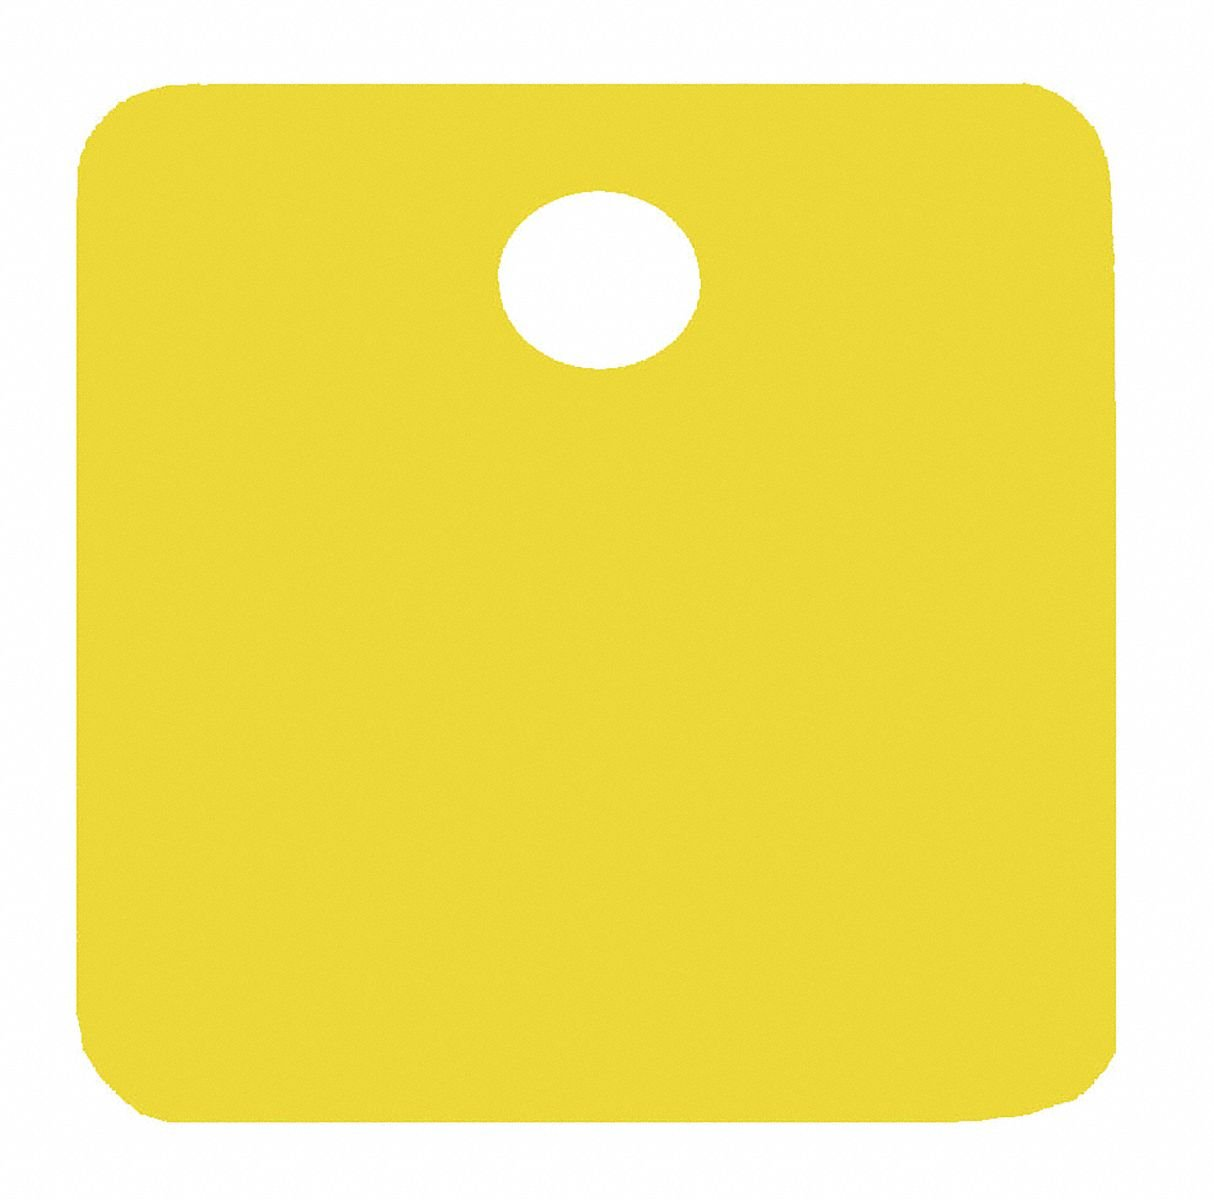 Yellow Blank Tag, Aluminum, Square, 1-1/4'' Height, 5 PK